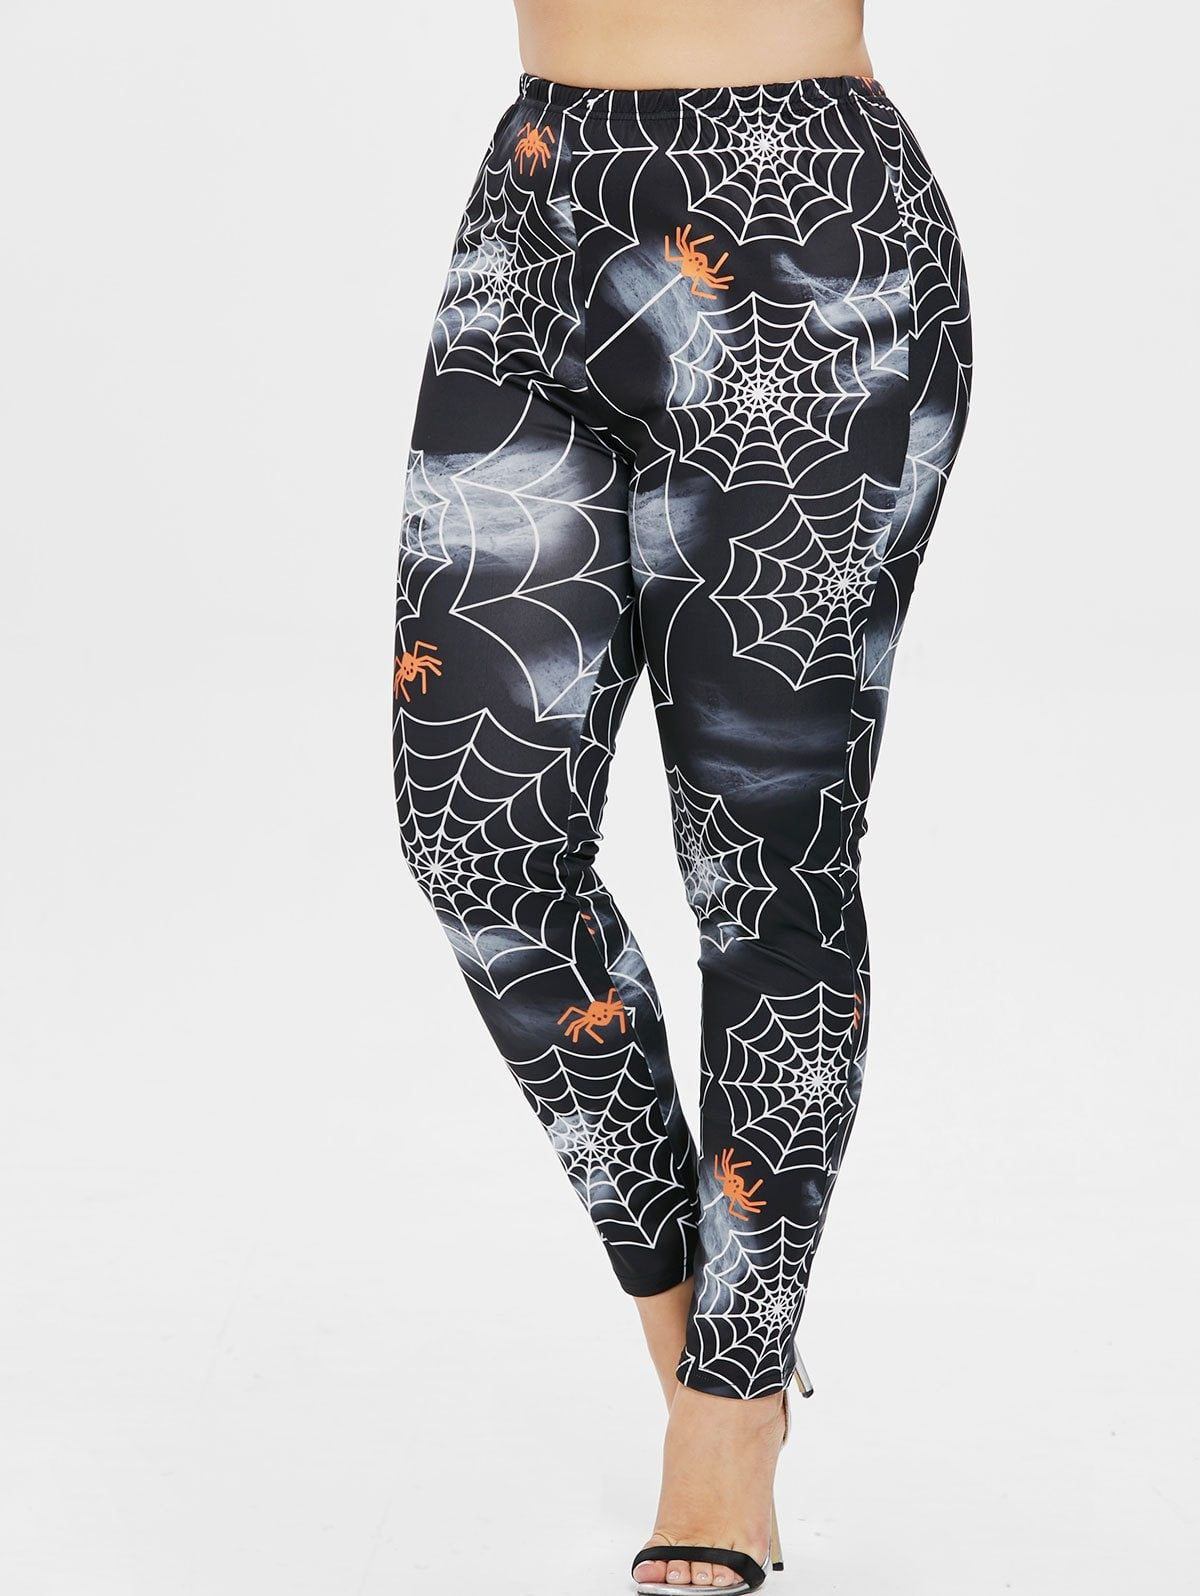 71b02b1340697 Plus Size Halloween Spider Web Leggings #leggings sporty outfit #shoes with  leggings #casual style leggings #female leggings #fall outfits with leggings  ...